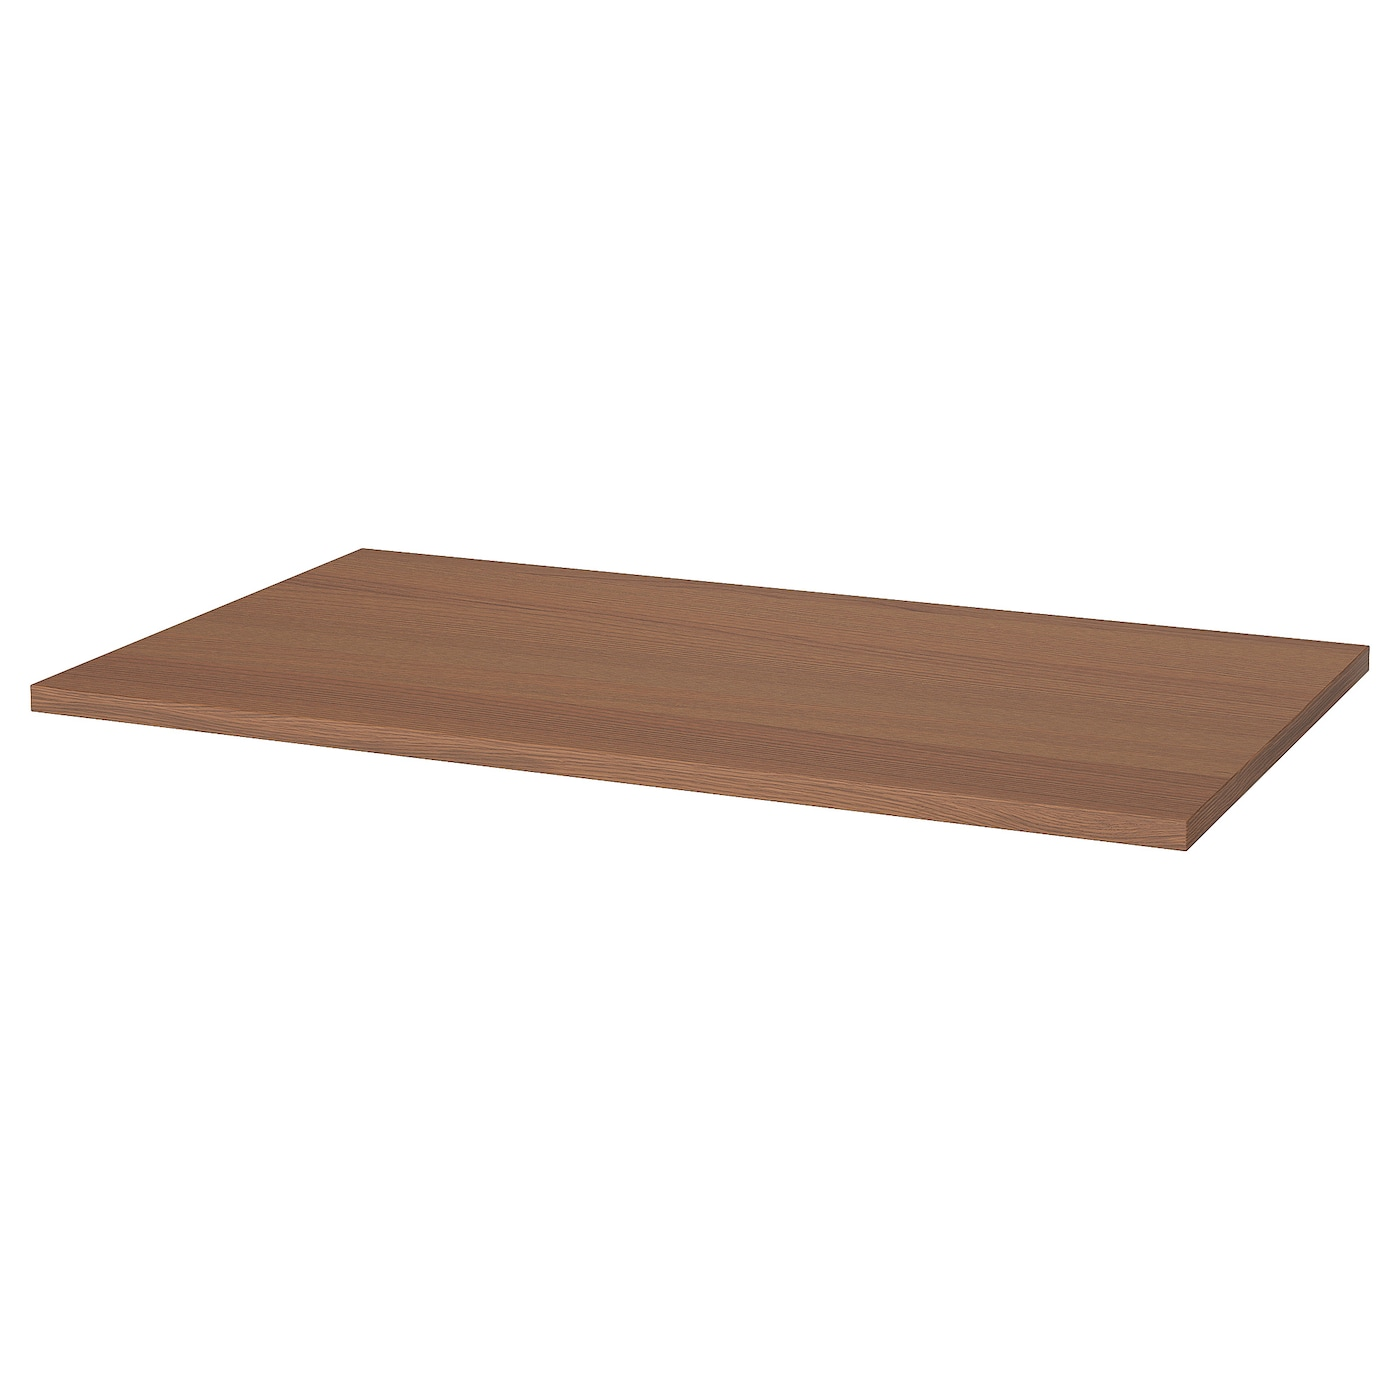 IdÅsen Tabletop Brown 47 1 4x27 2